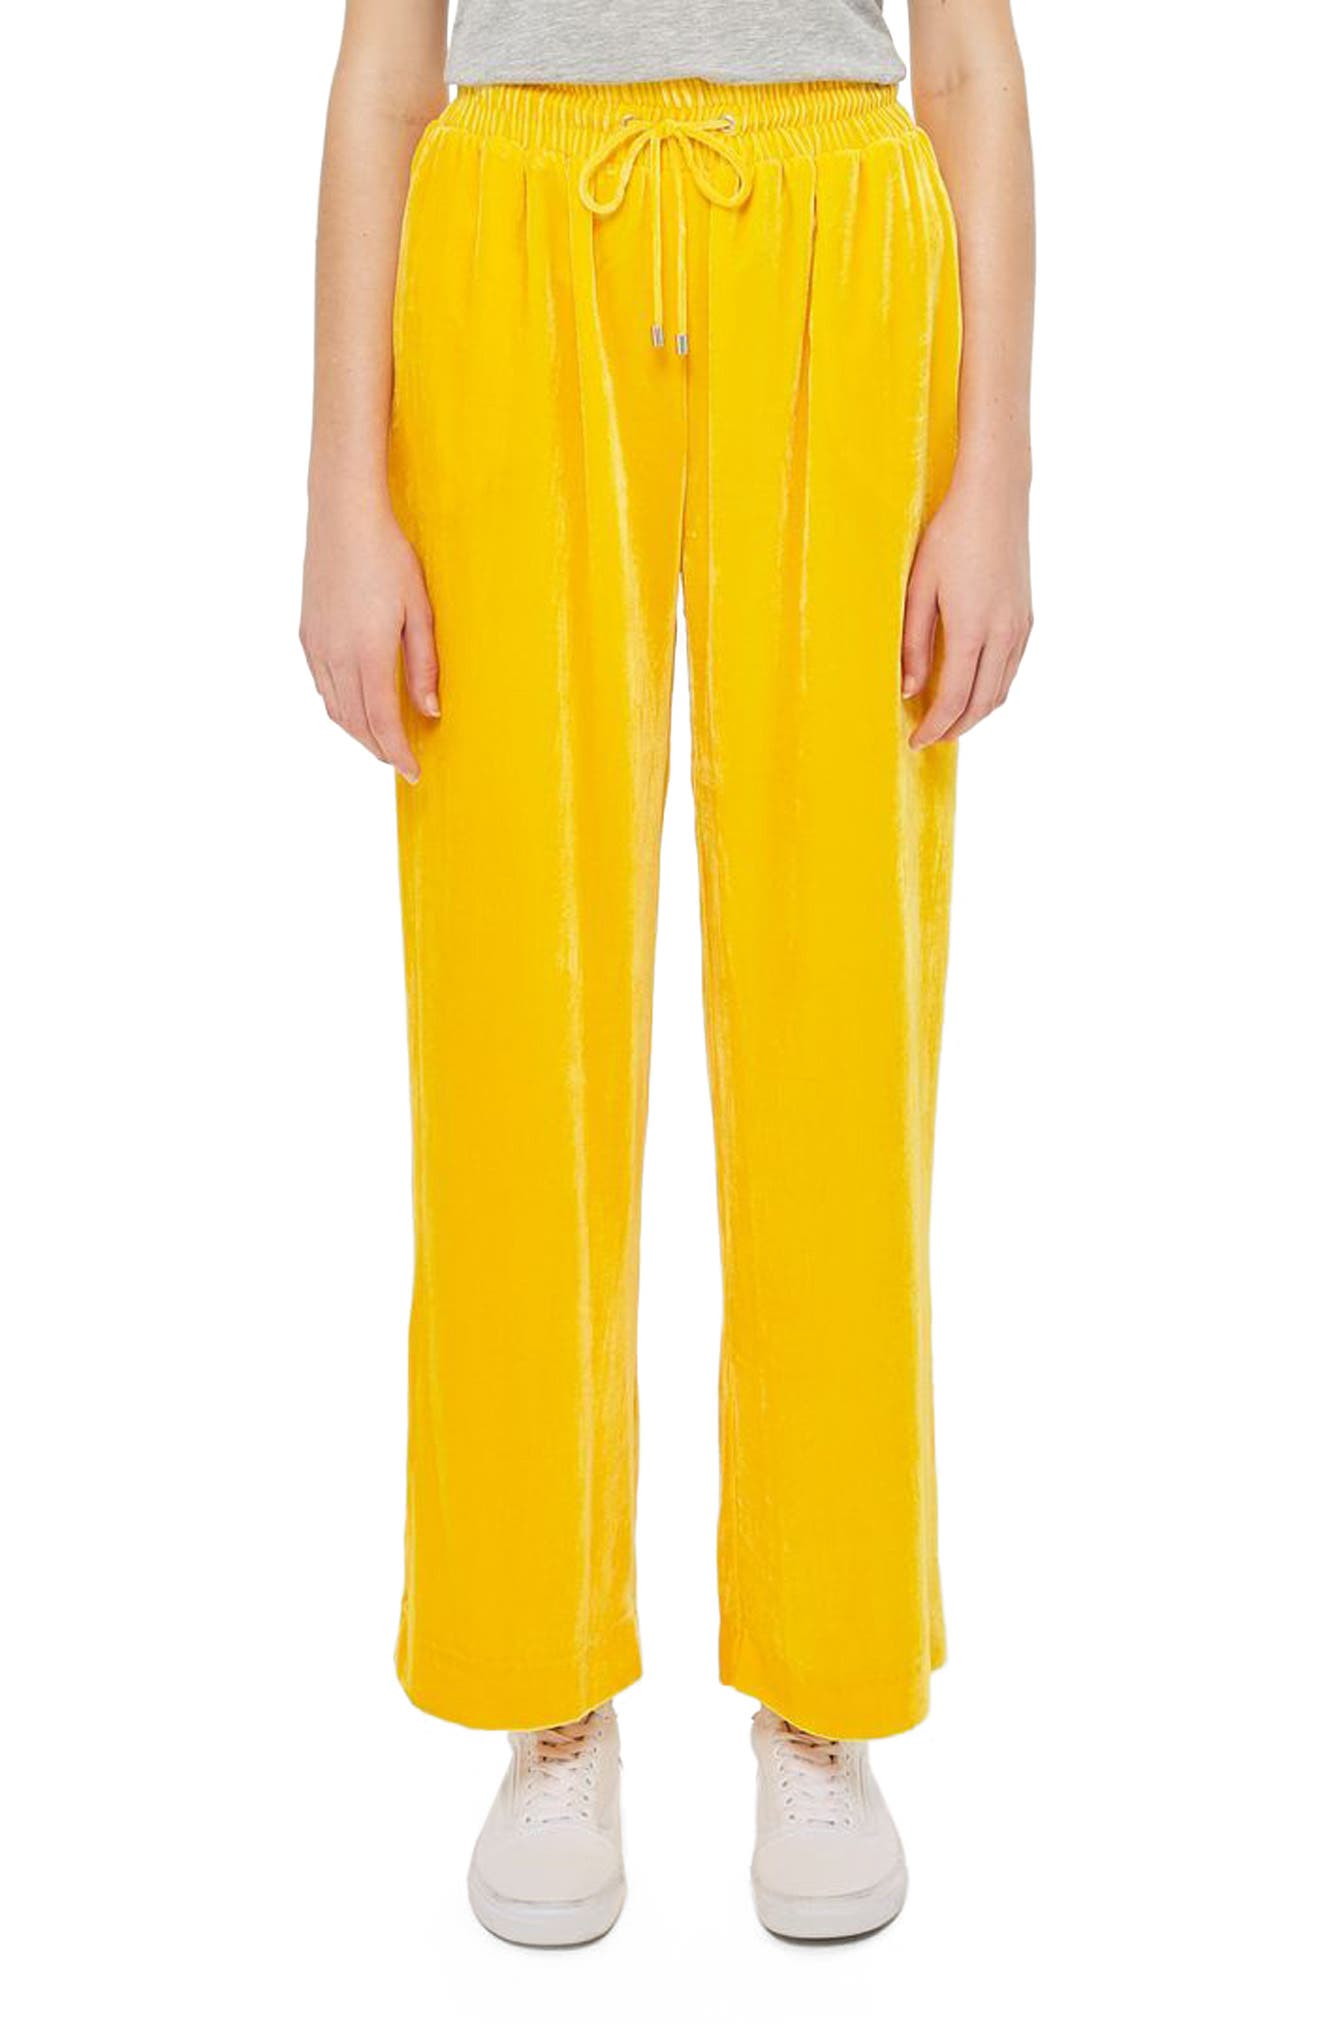 Topshop Boutique Velvet Pants